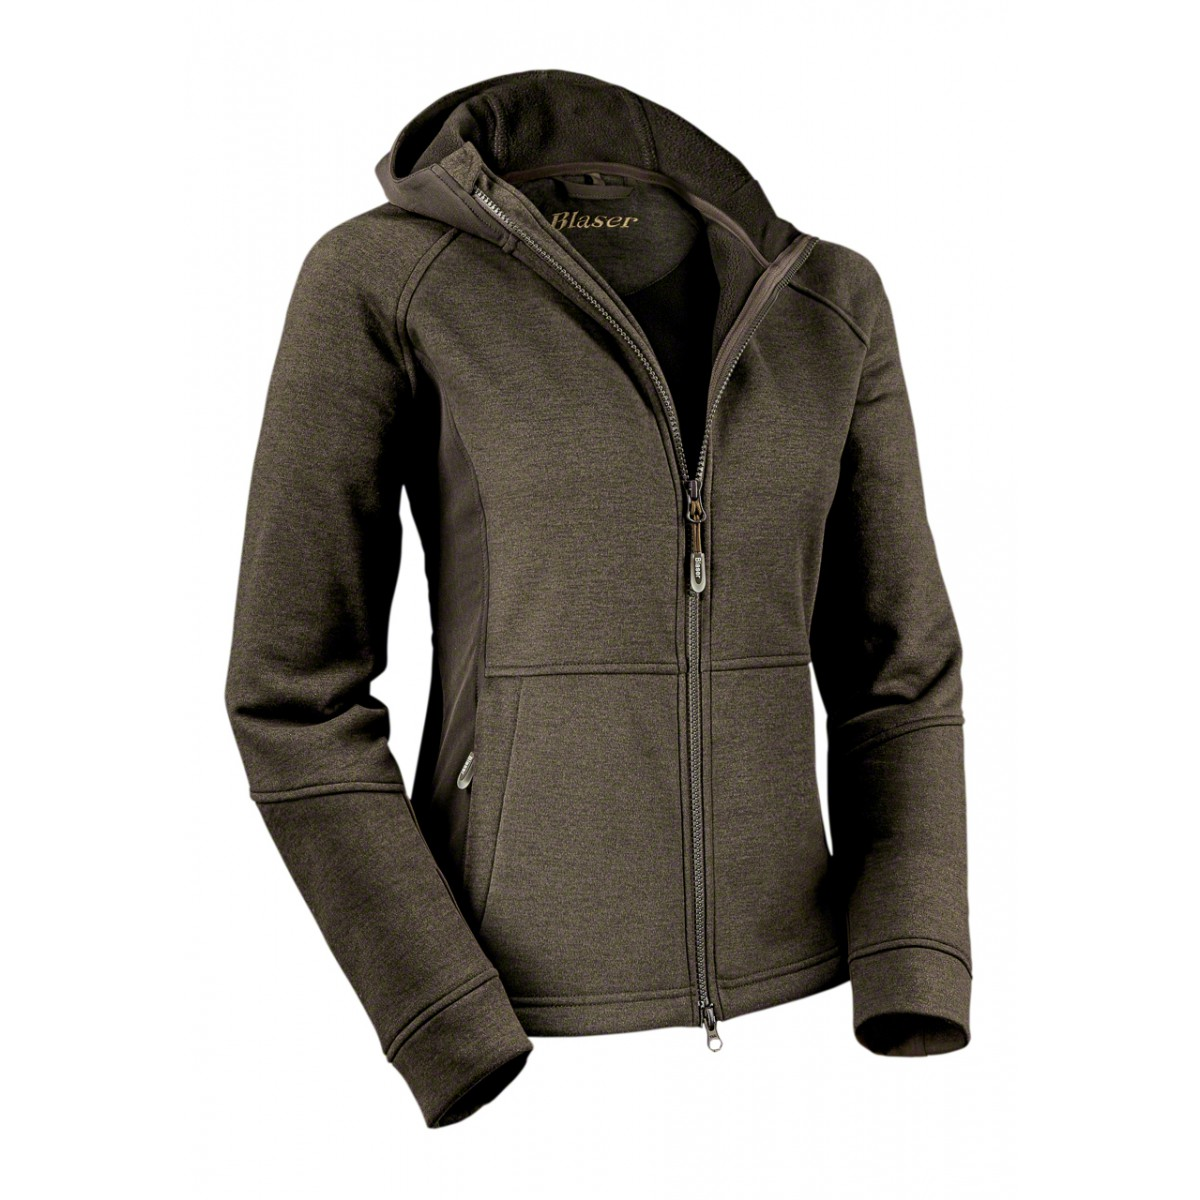 Blaser ACTIVE Fleece Jacket Hanna Női Kabát 115066-112/574